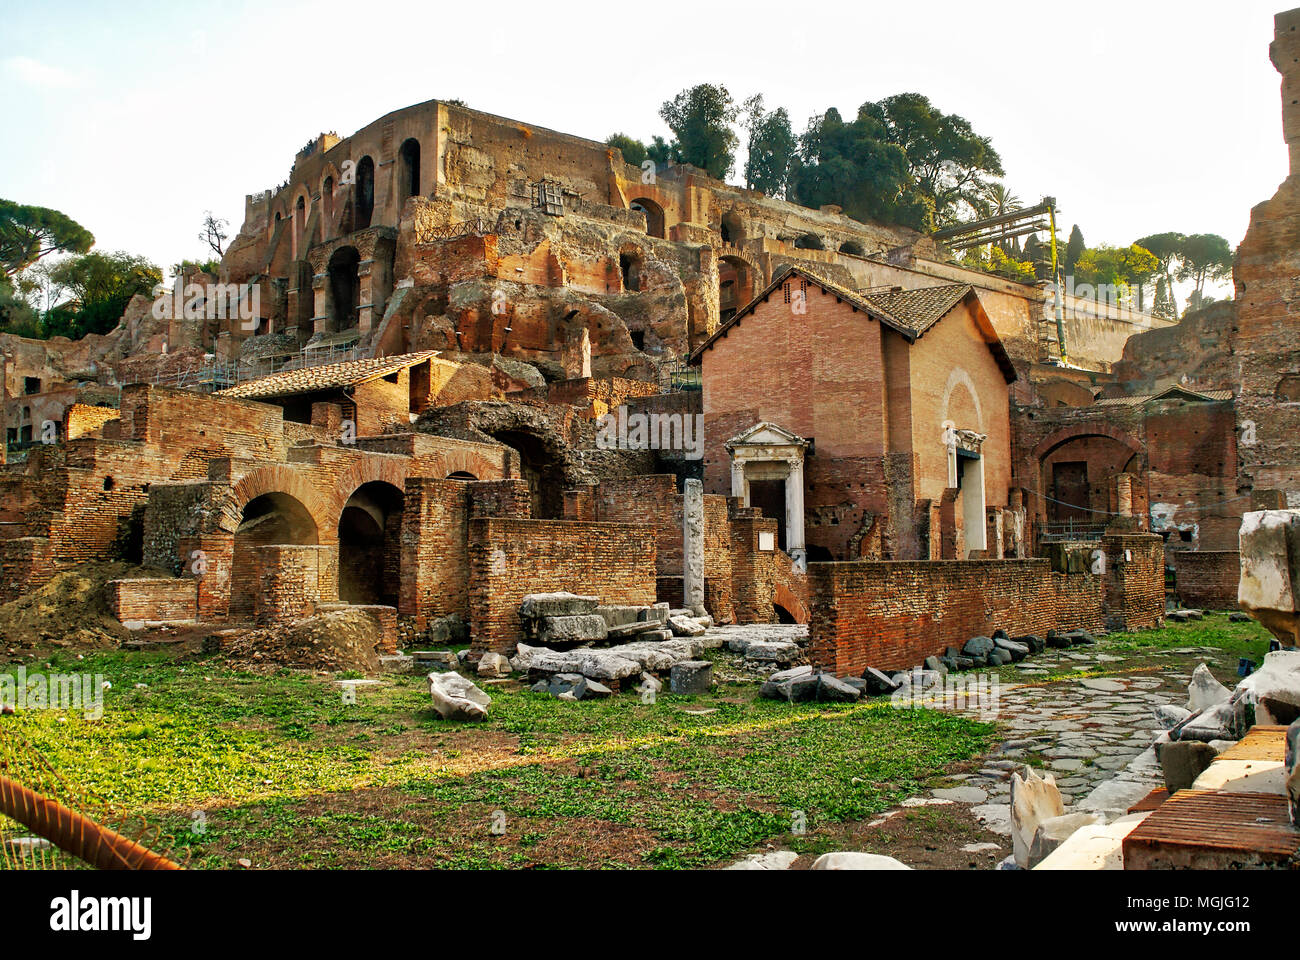 Reconstruction and excavation in this area in the Roman Forum. Rome, Italy - Stock Image